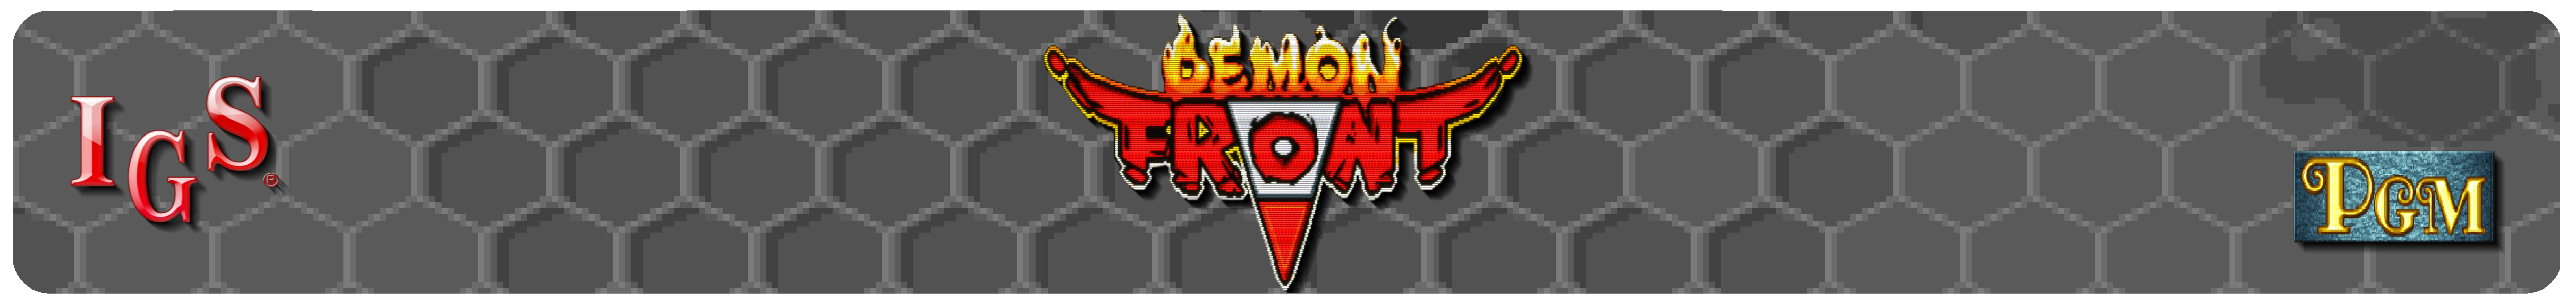 Demon_Front_Grid_2_Correct_AR.png